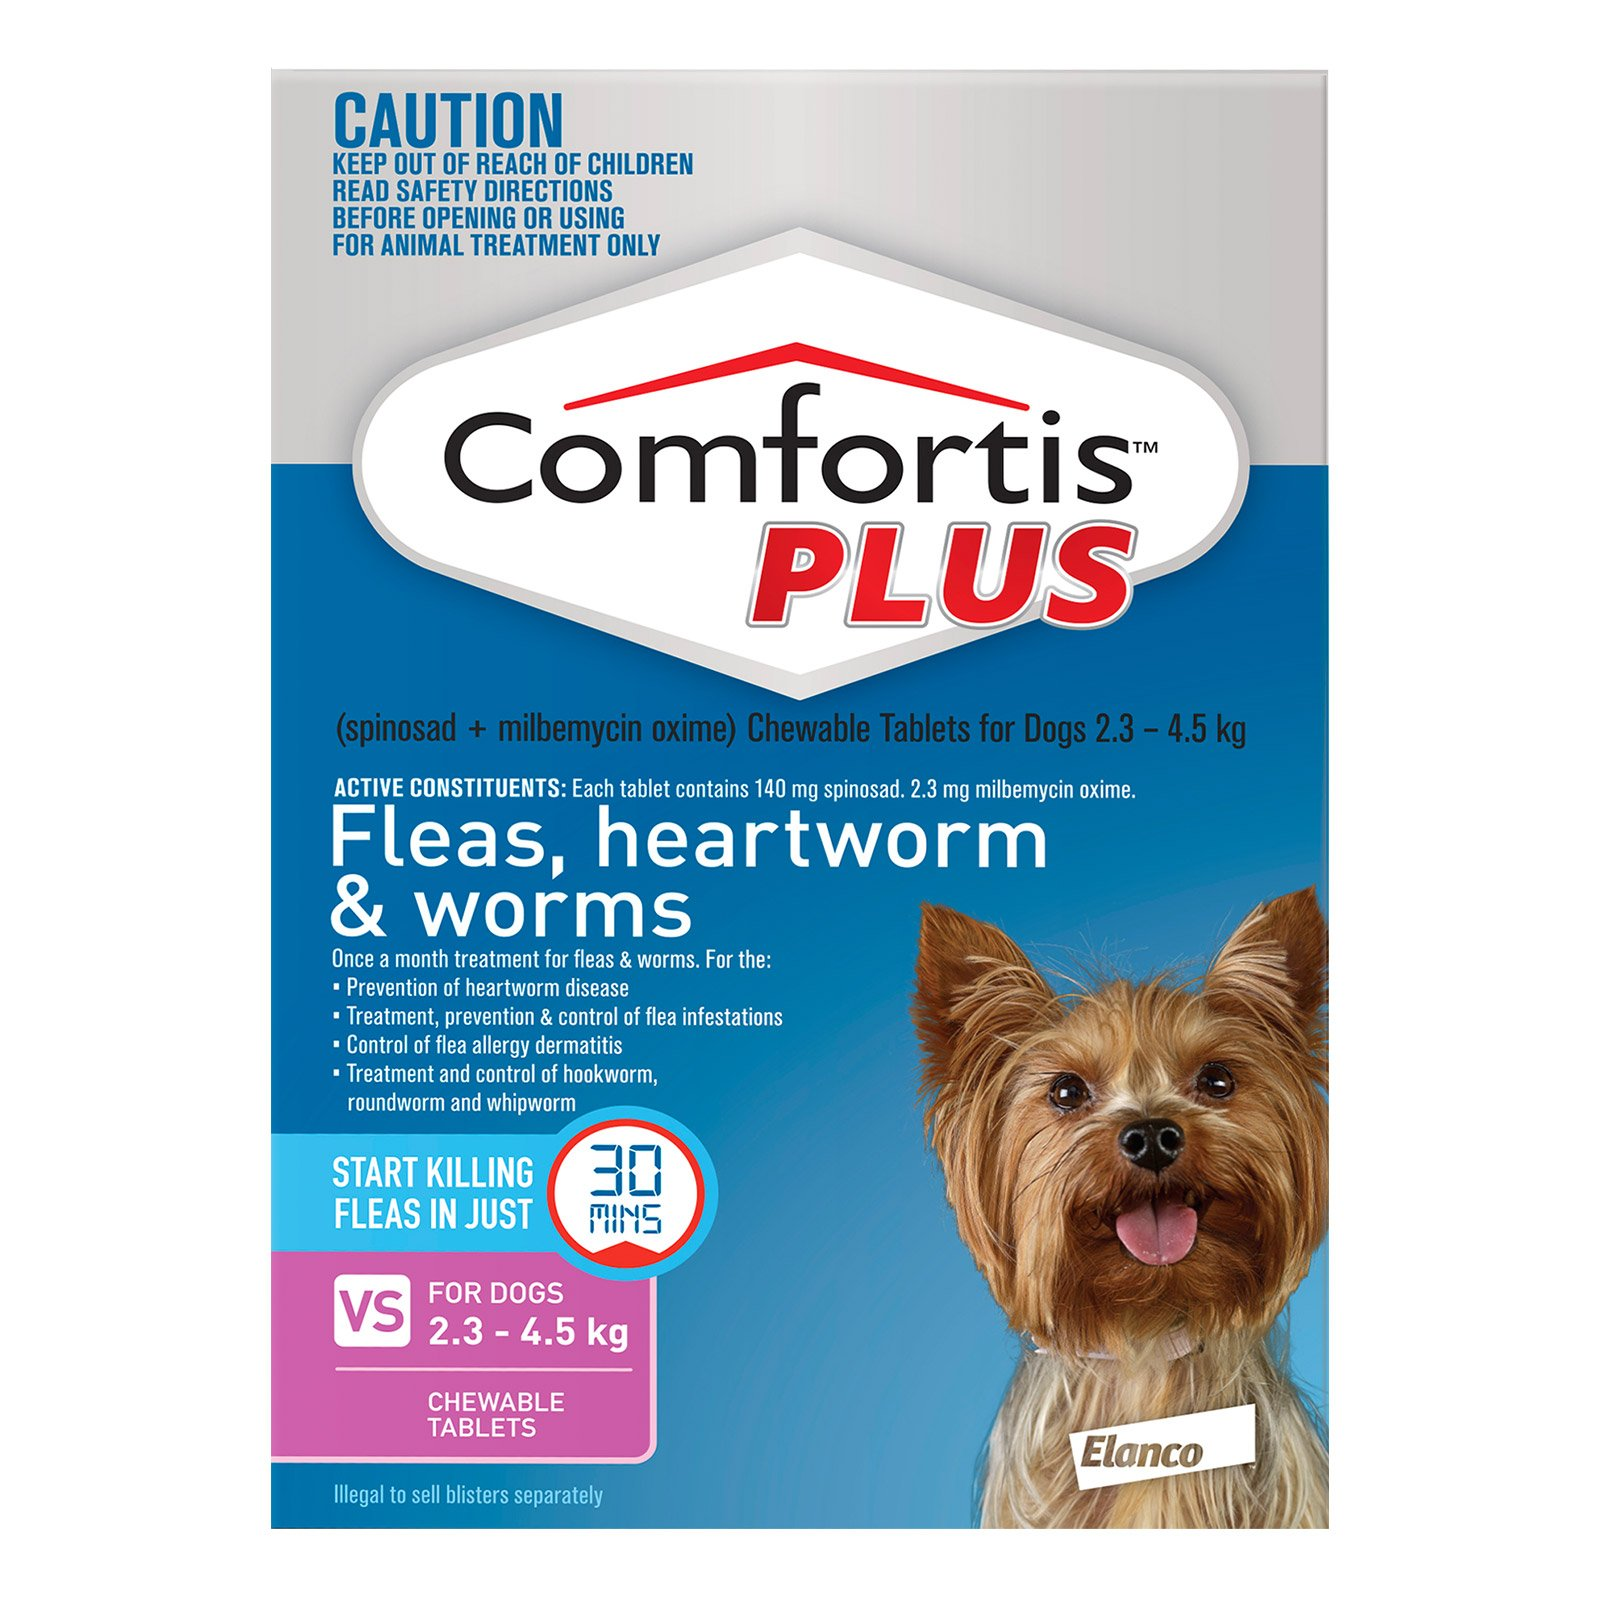 Comfortis Plus for XSmall Dogs 2.3-4.5kg (Pink)